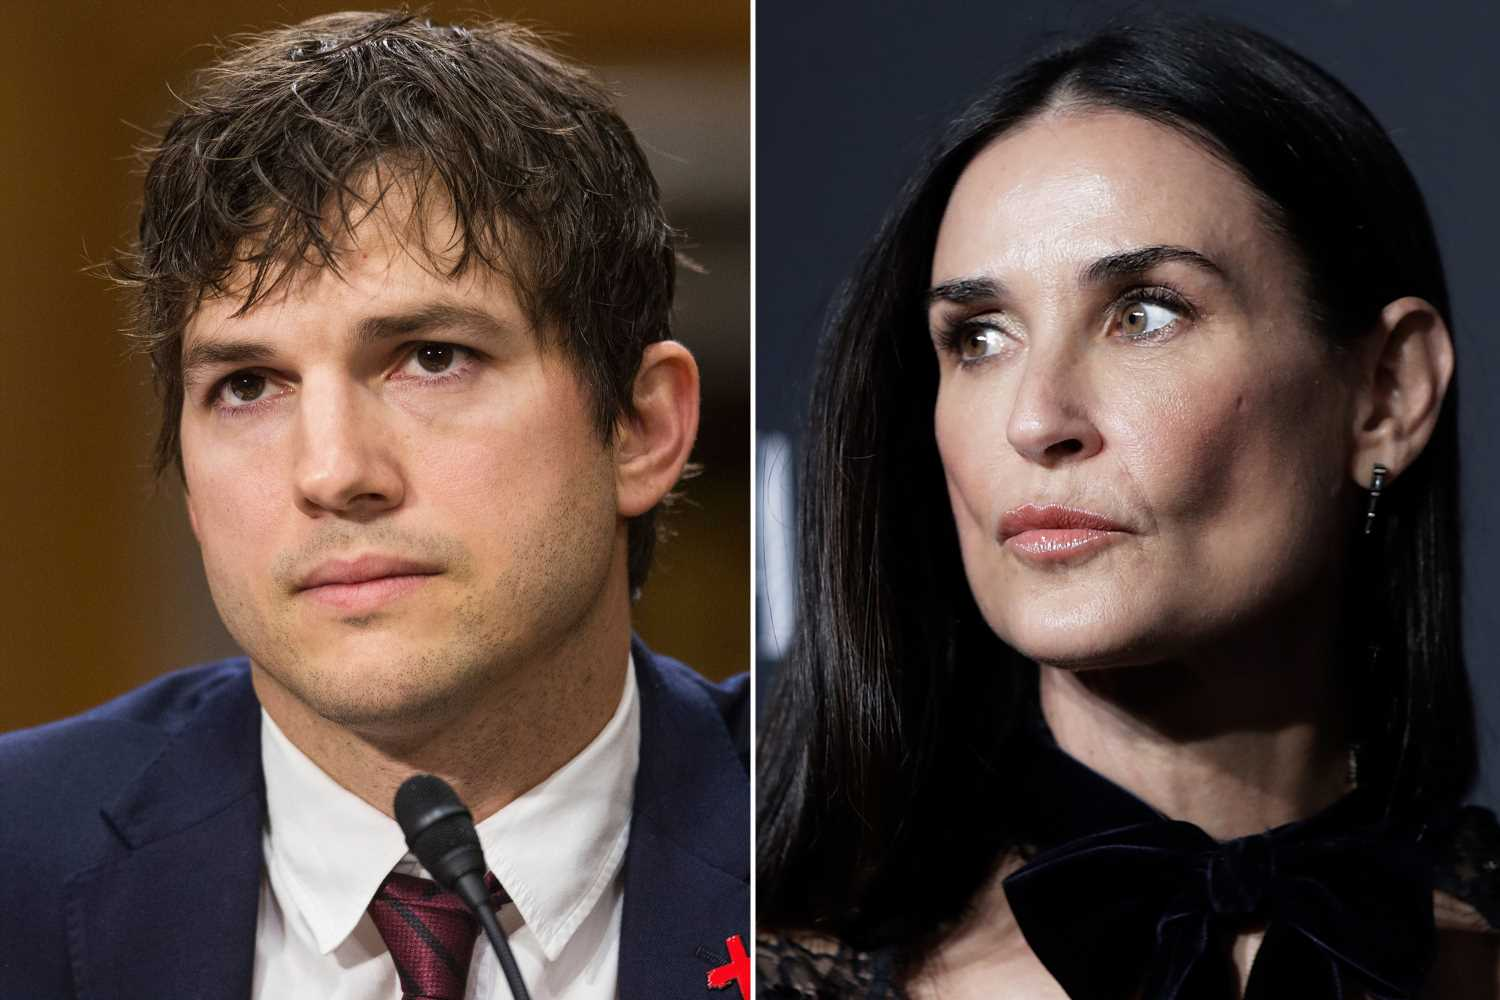 Ashton Kutcher holds back on 'snarky' tweet after Demi Moore's explosive claims